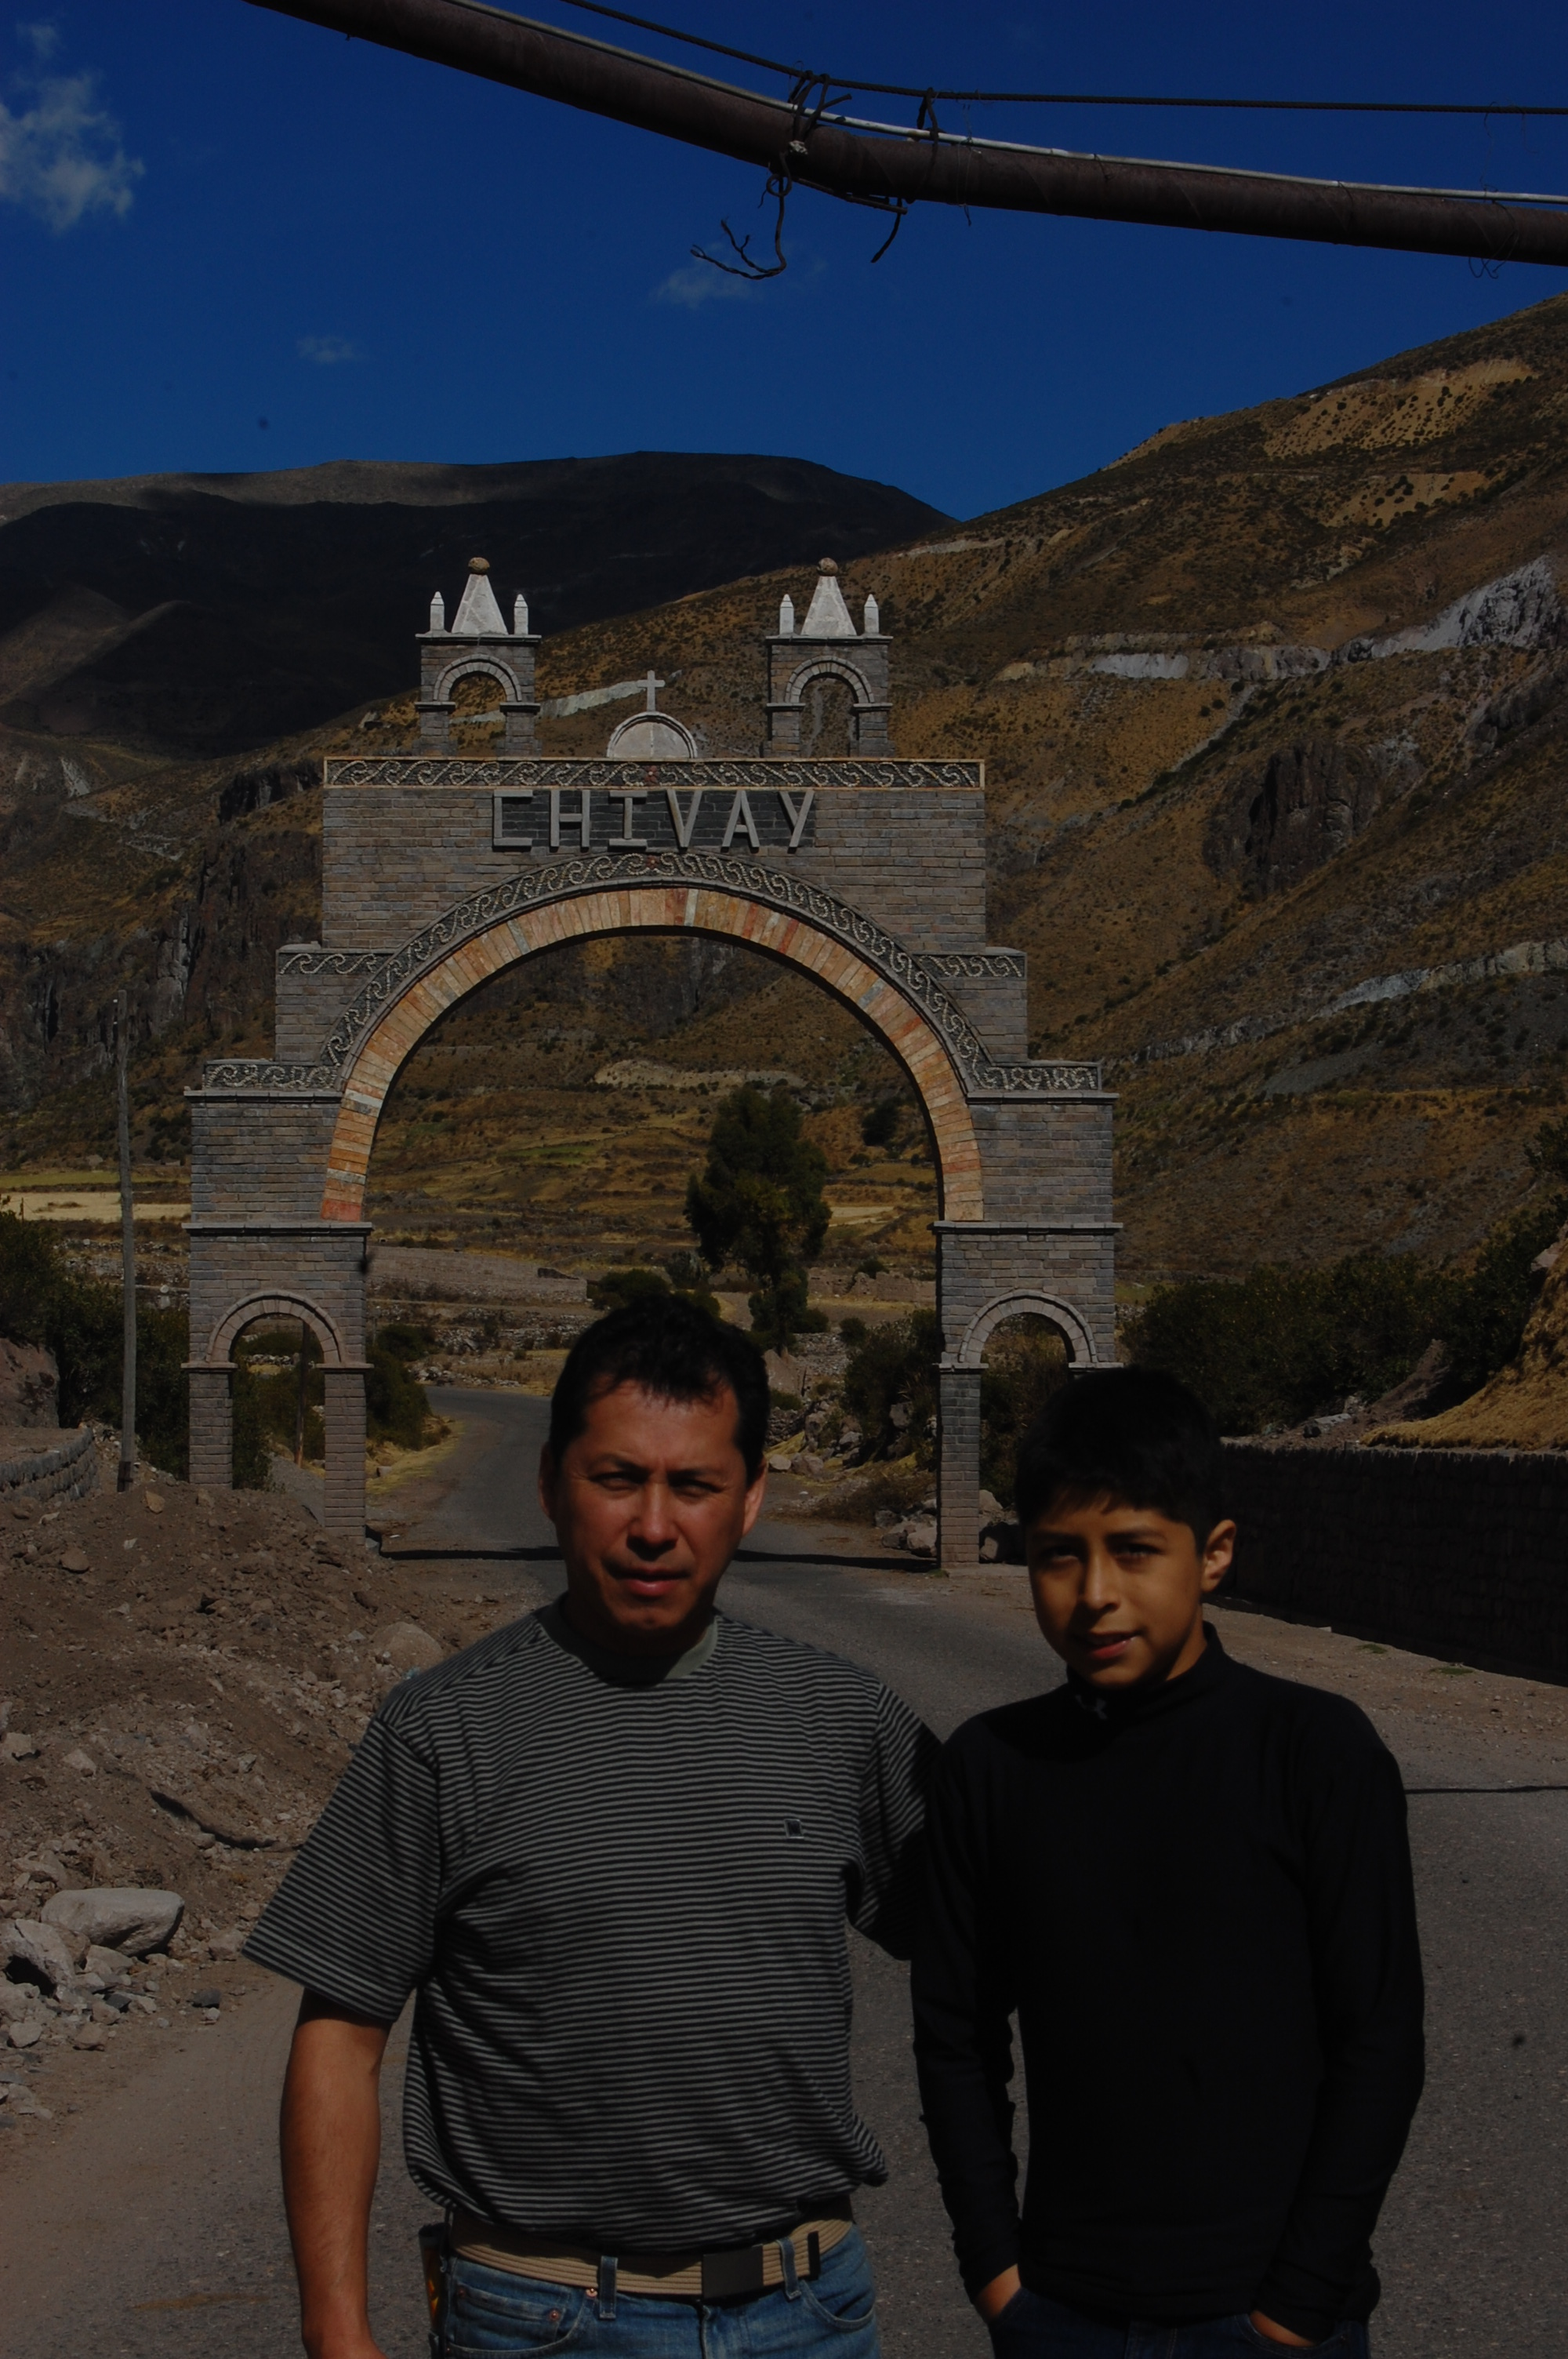 Richard and Chris with this call arch spanning over the highway into Chivay